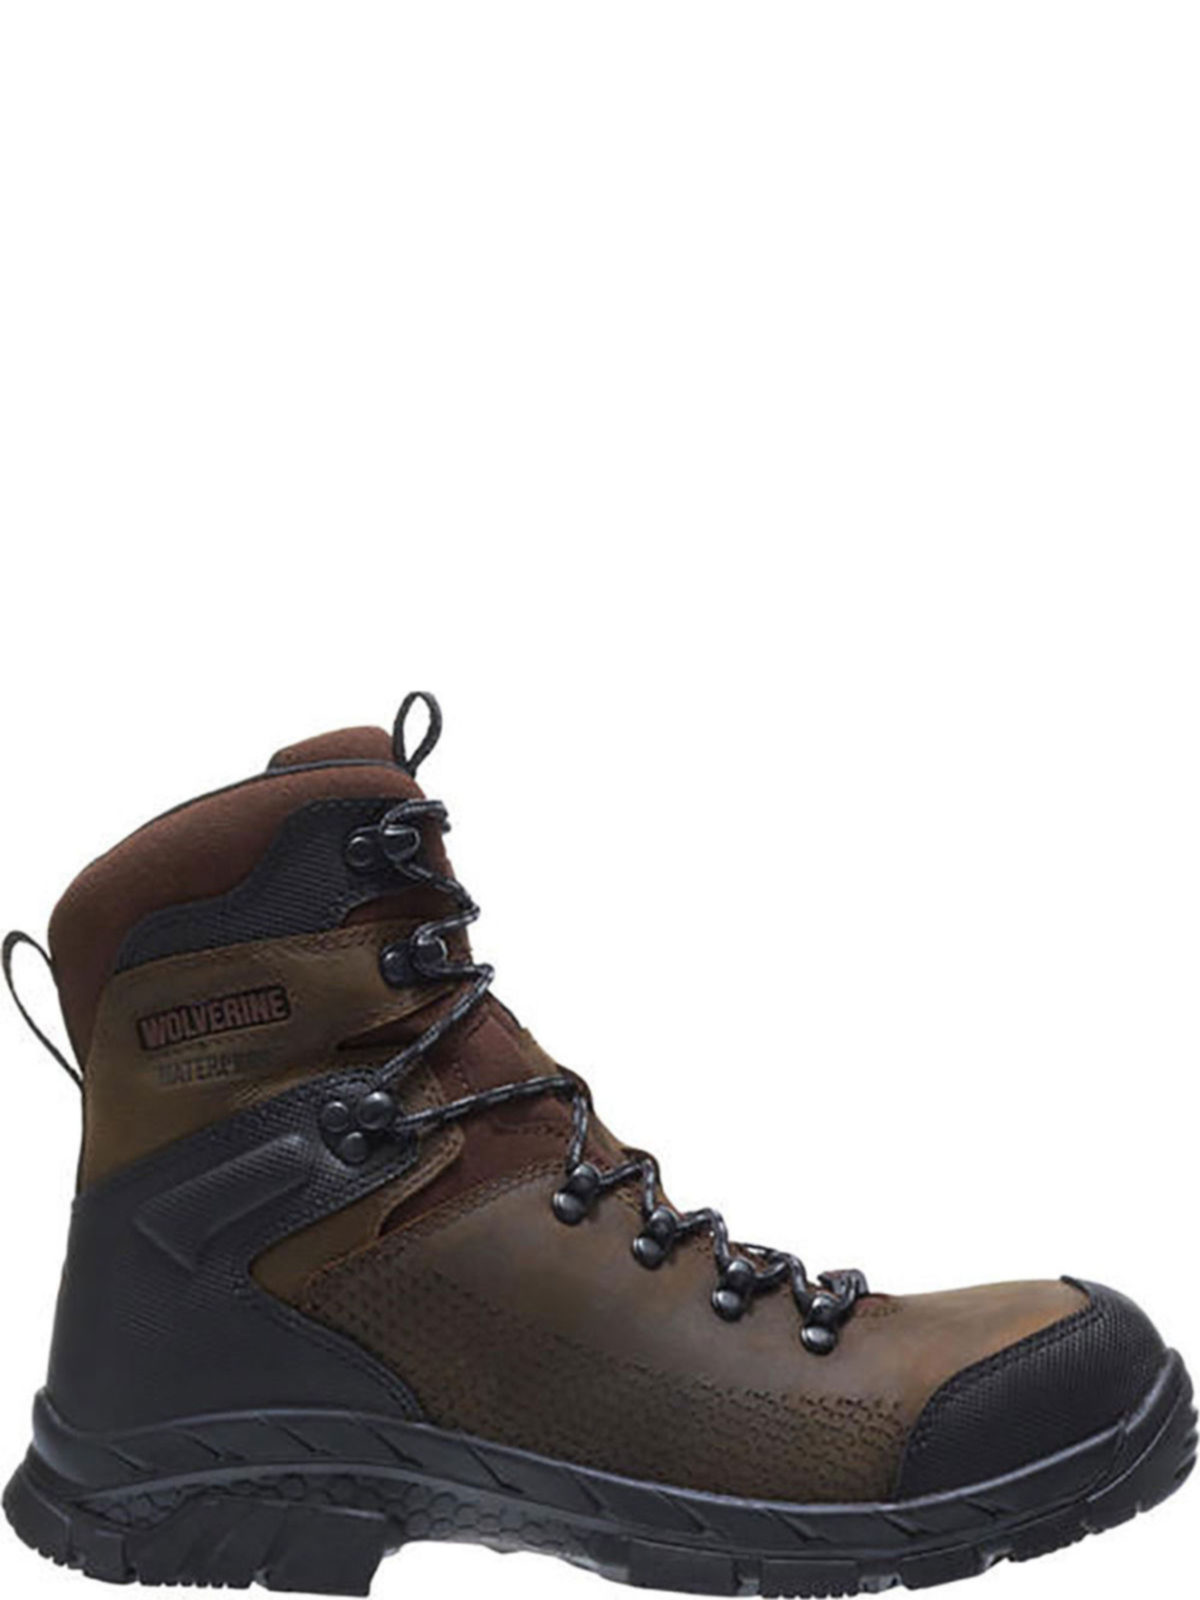 bf0434d4b85 Wolverine Mens Glacier Xtreme Insulated Waterproof 8